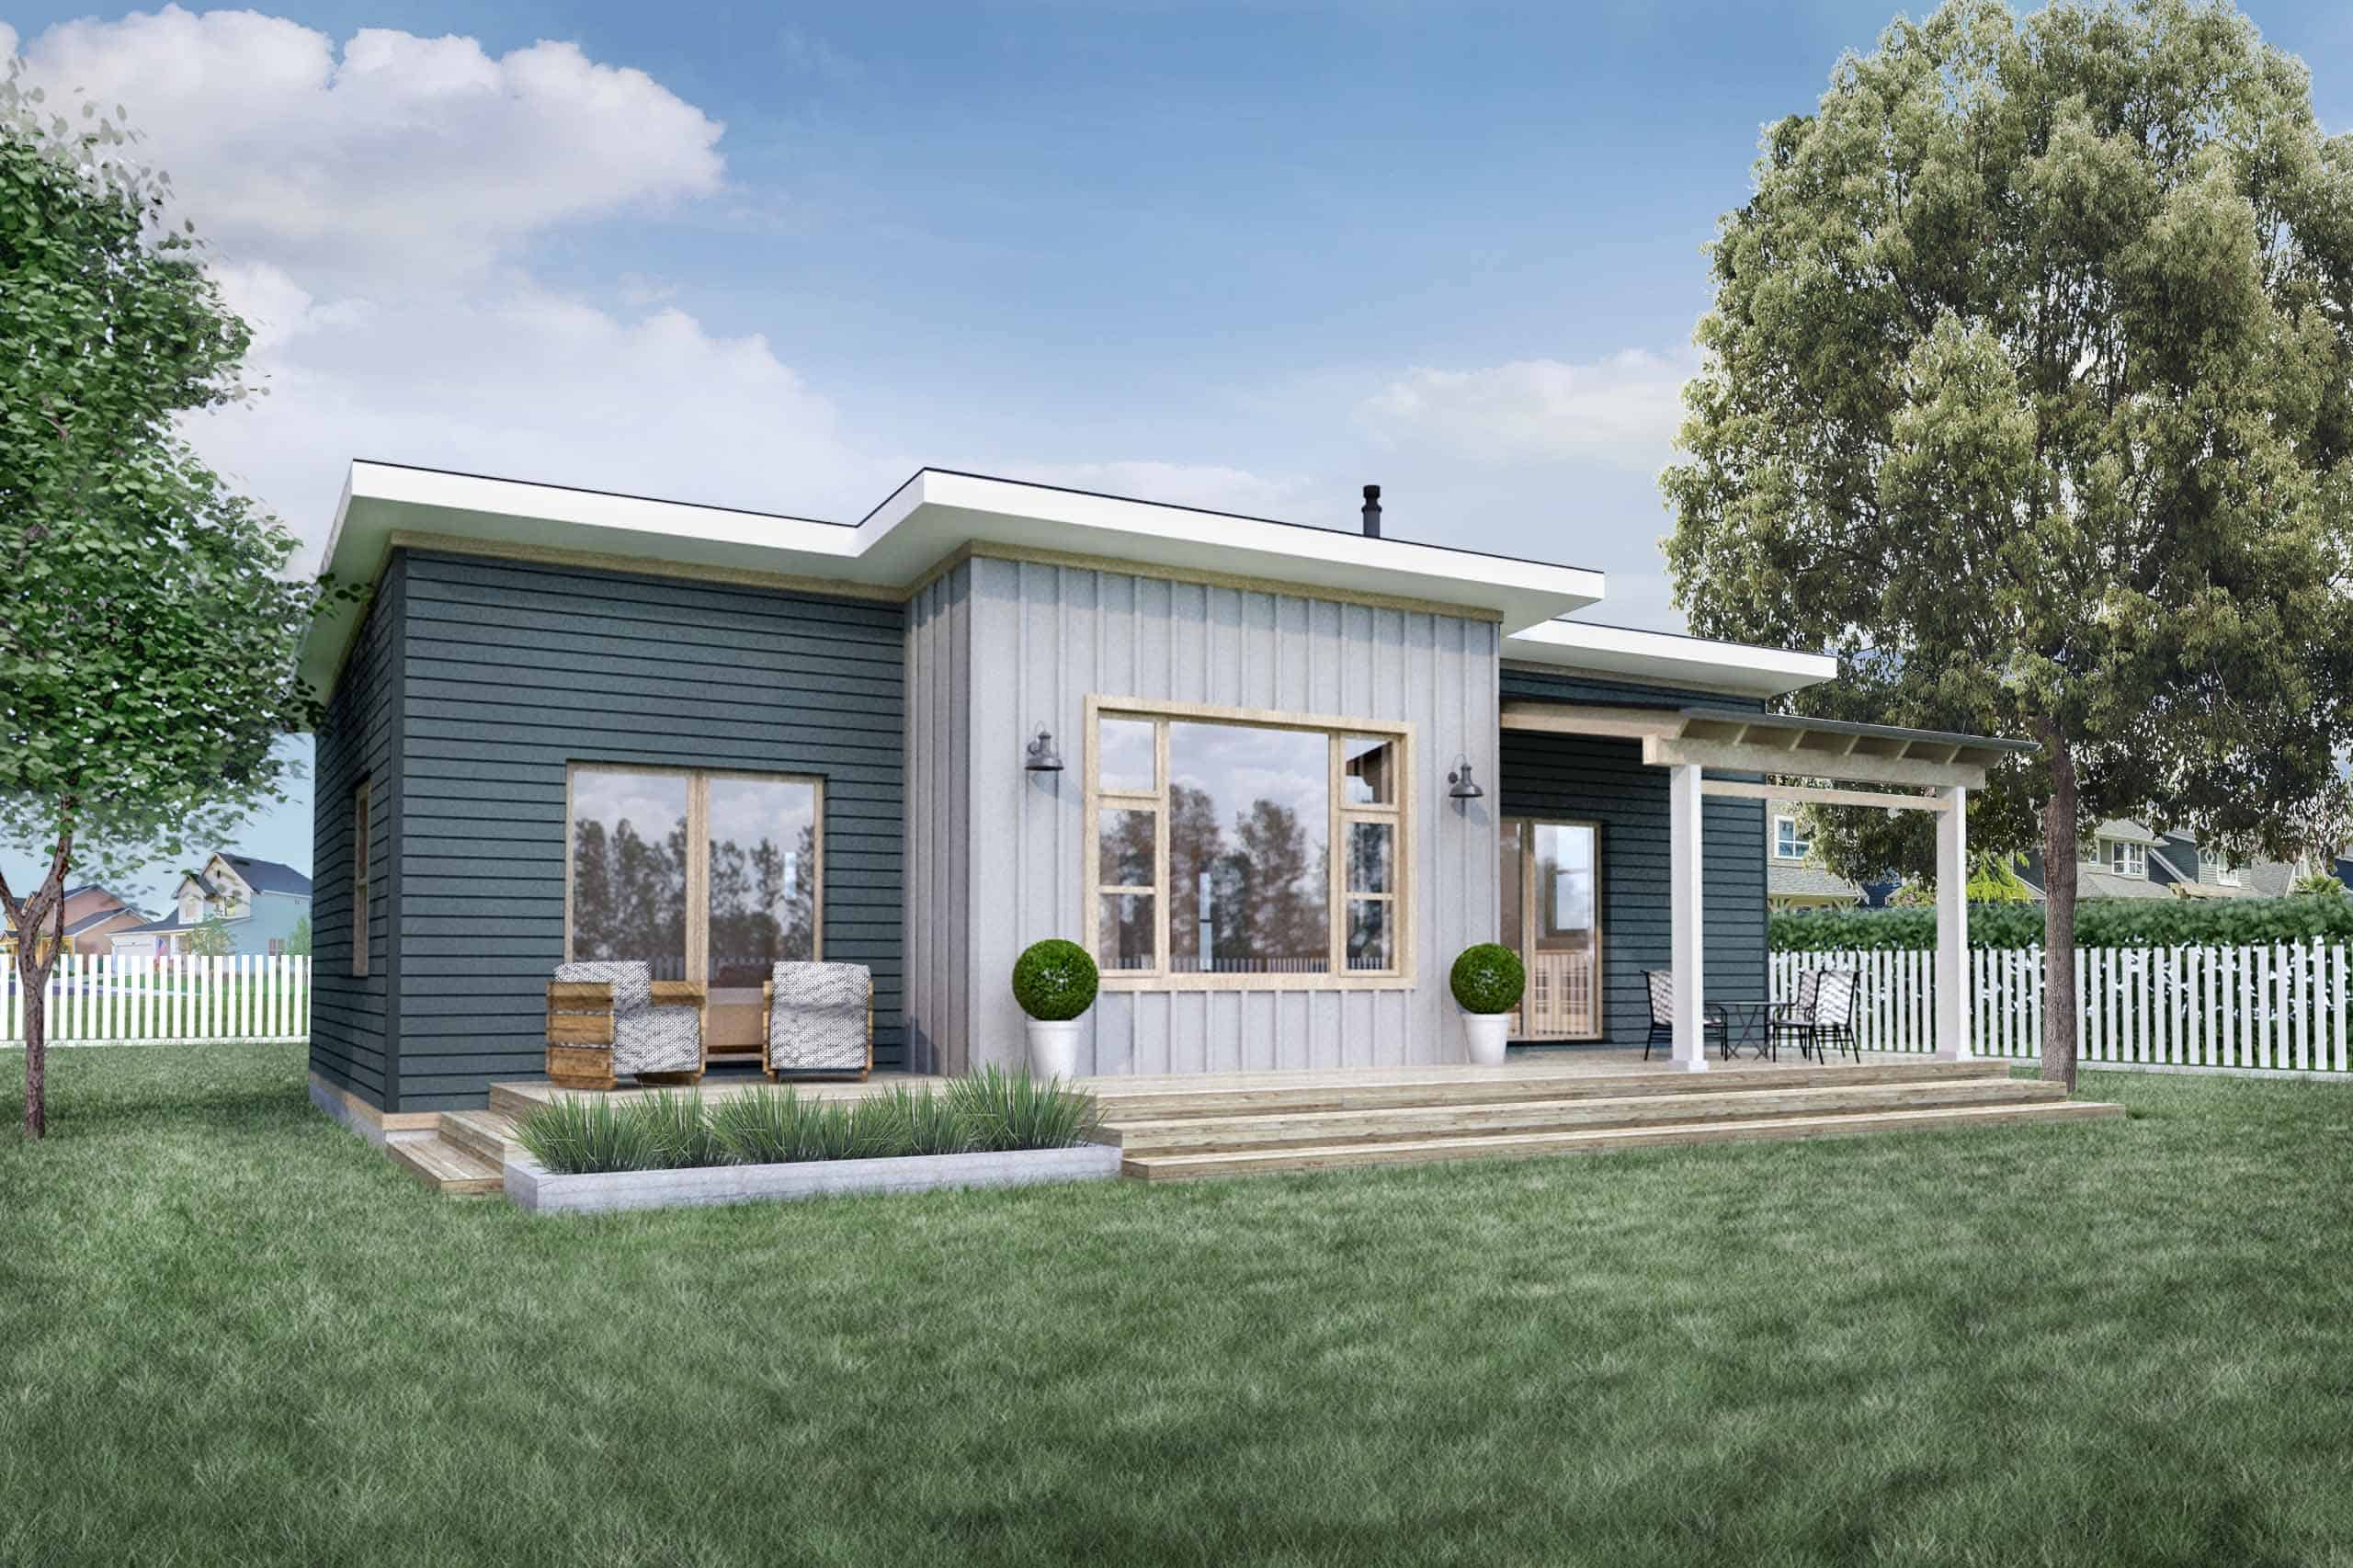 800 Sq Ft House Plans Designed For Compact Living